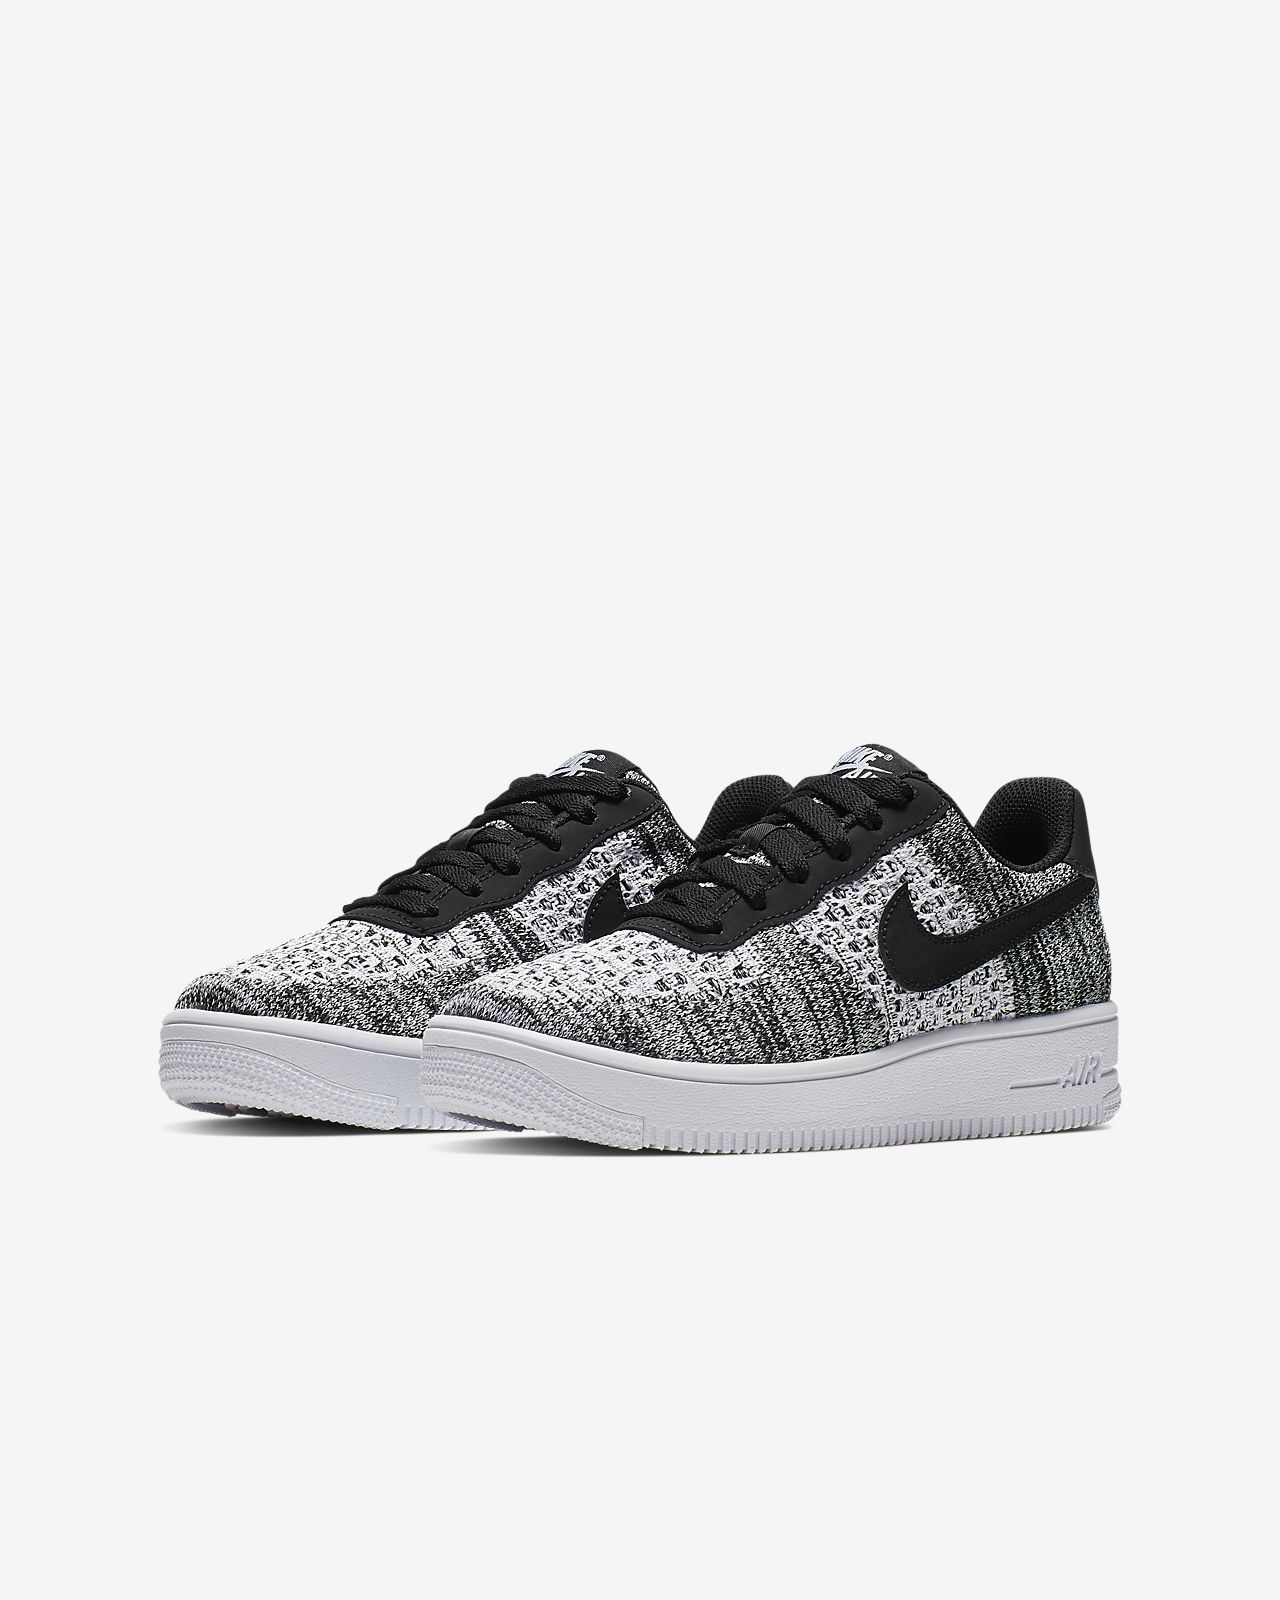 check out a18cc d7a3b ... Nike Air Force 1 Flyknit 2.0 Younger Older Kids  Shoe